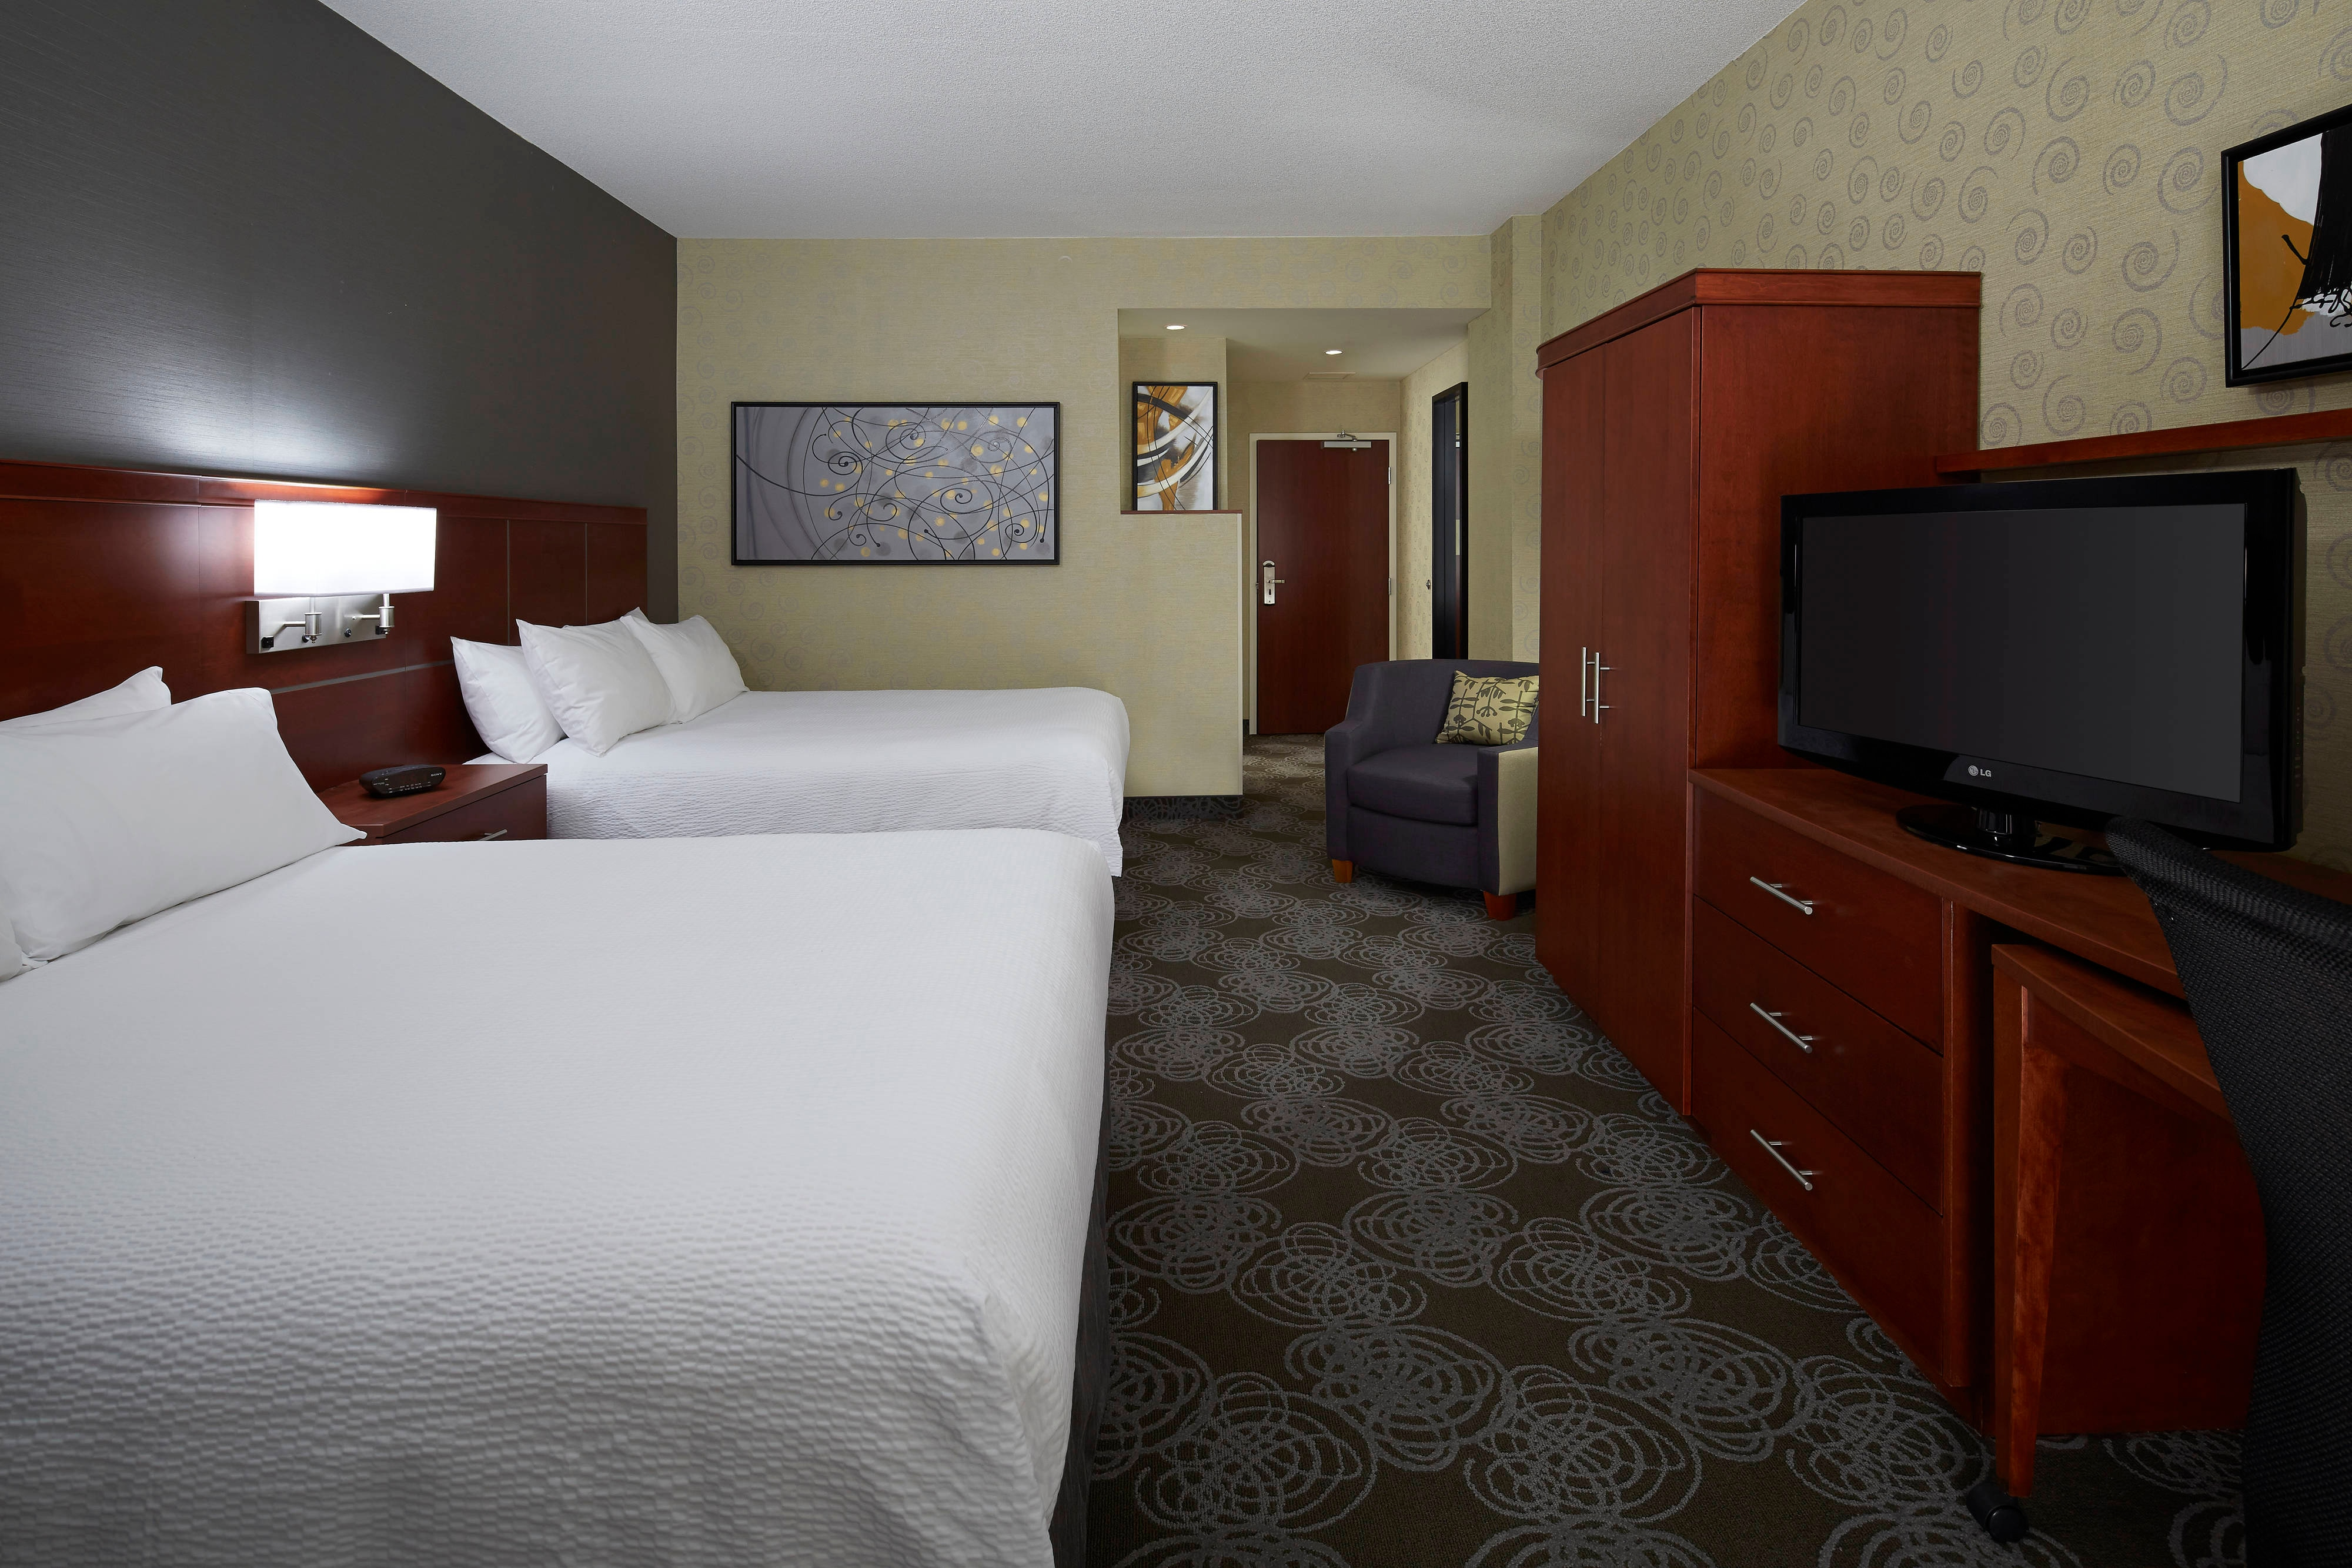 Pointe Claire Quebec hotel rooms